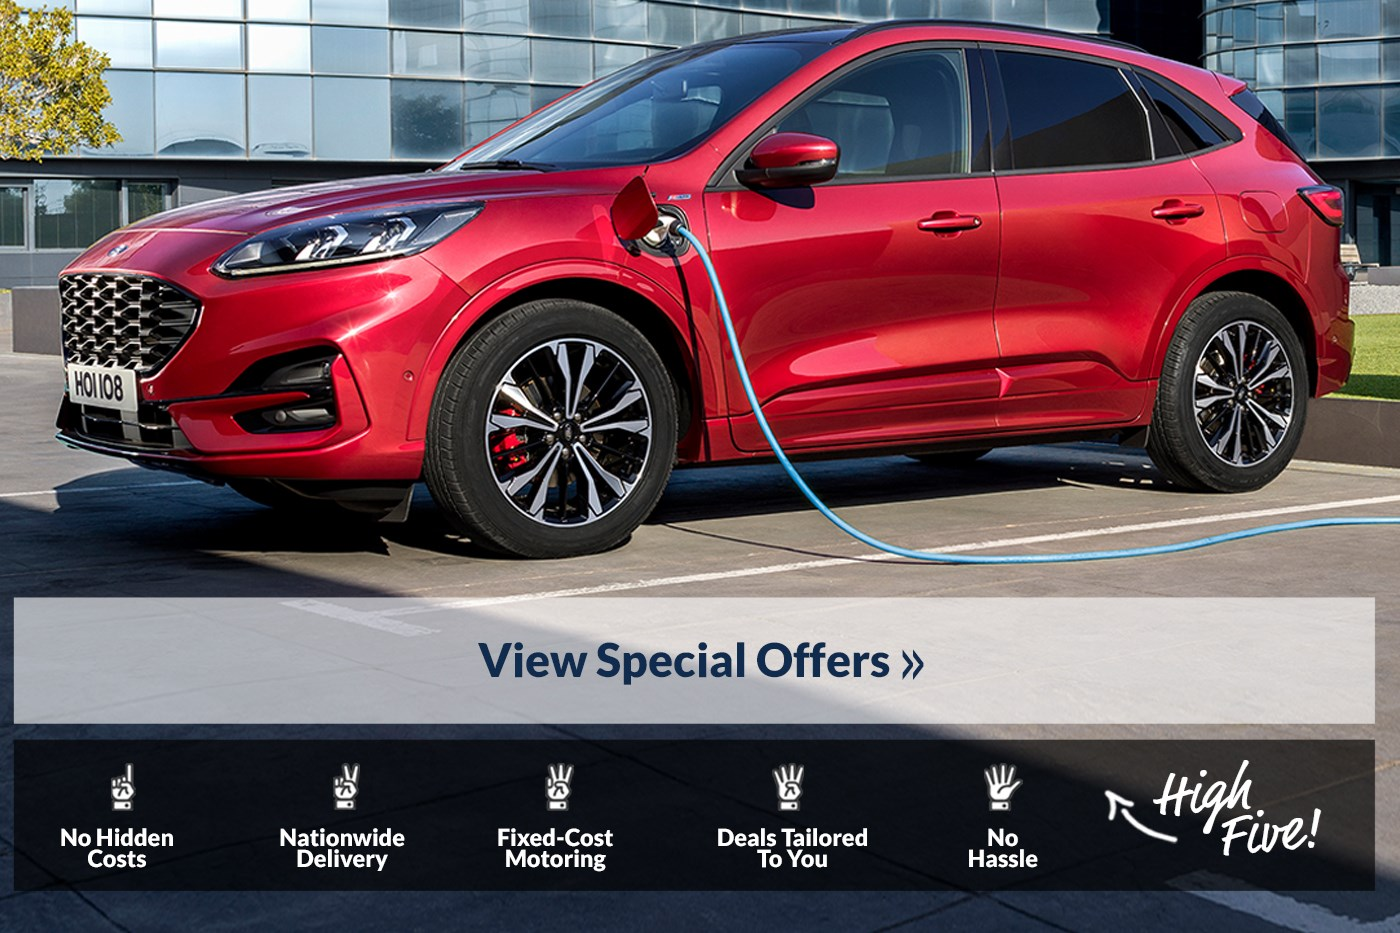 New Kuga Offers